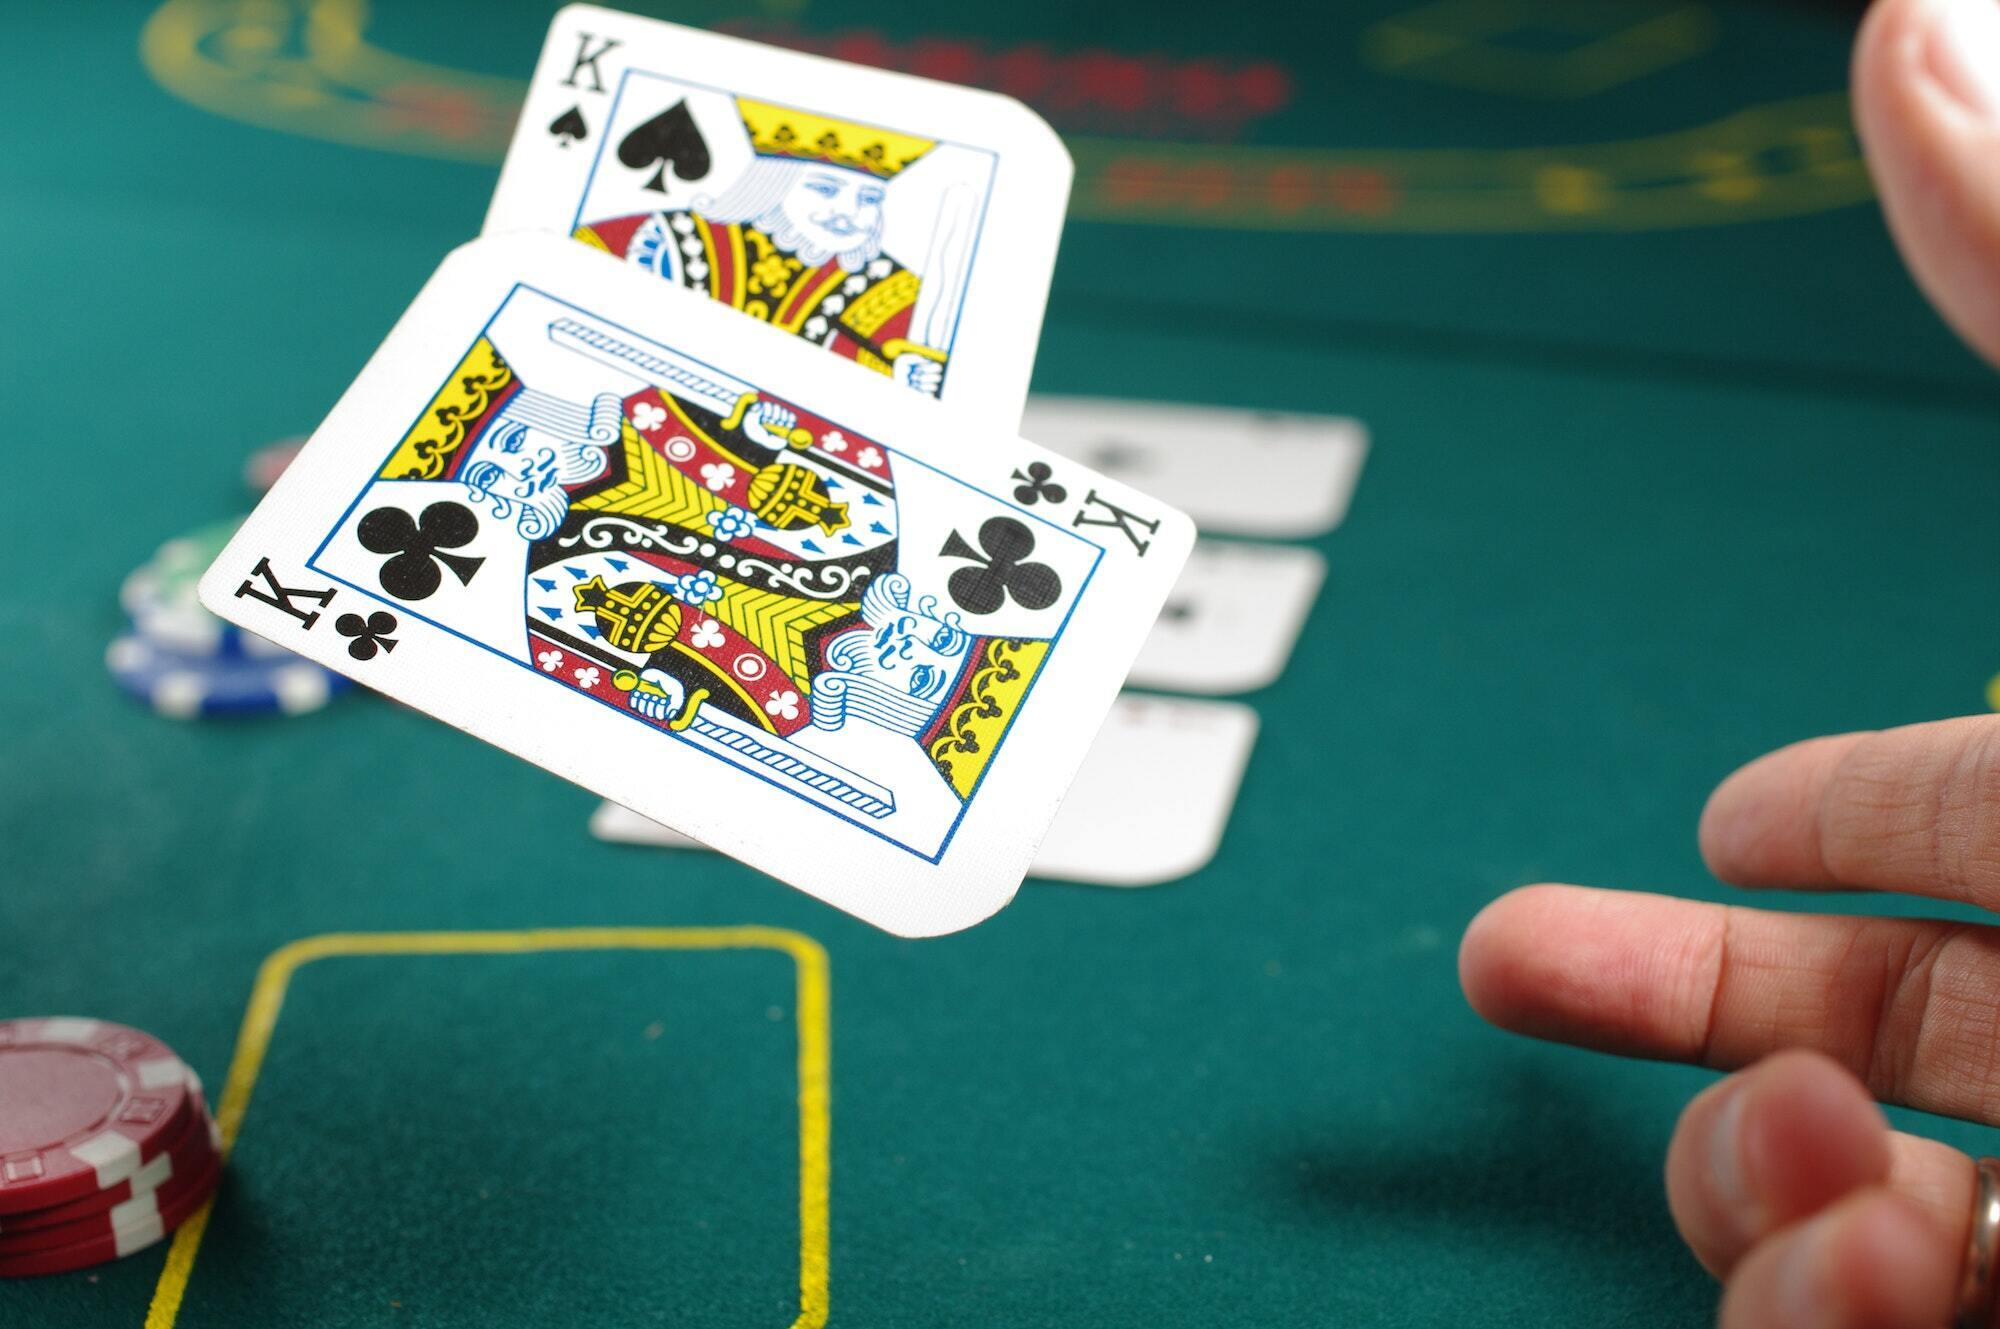 player at casino felt tossing playing cards in the air